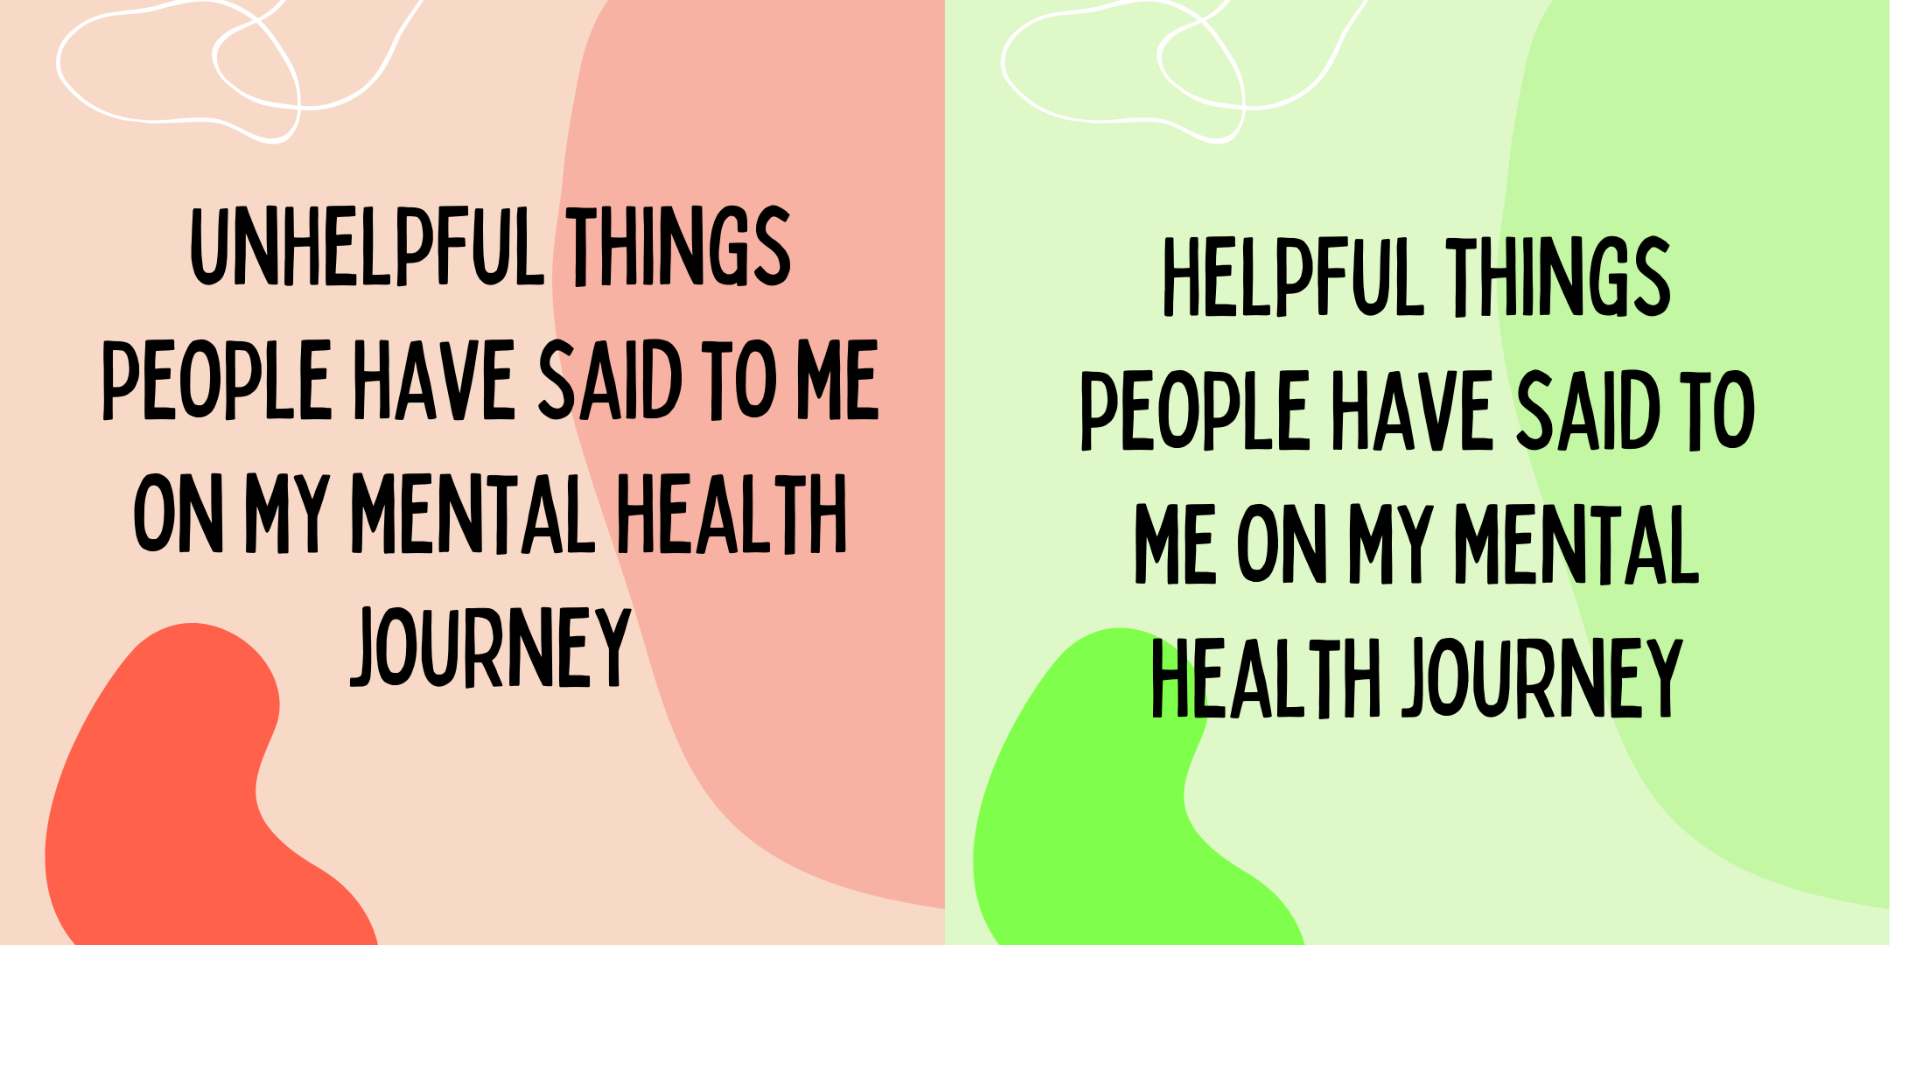 Things I have heard on my mental health journey